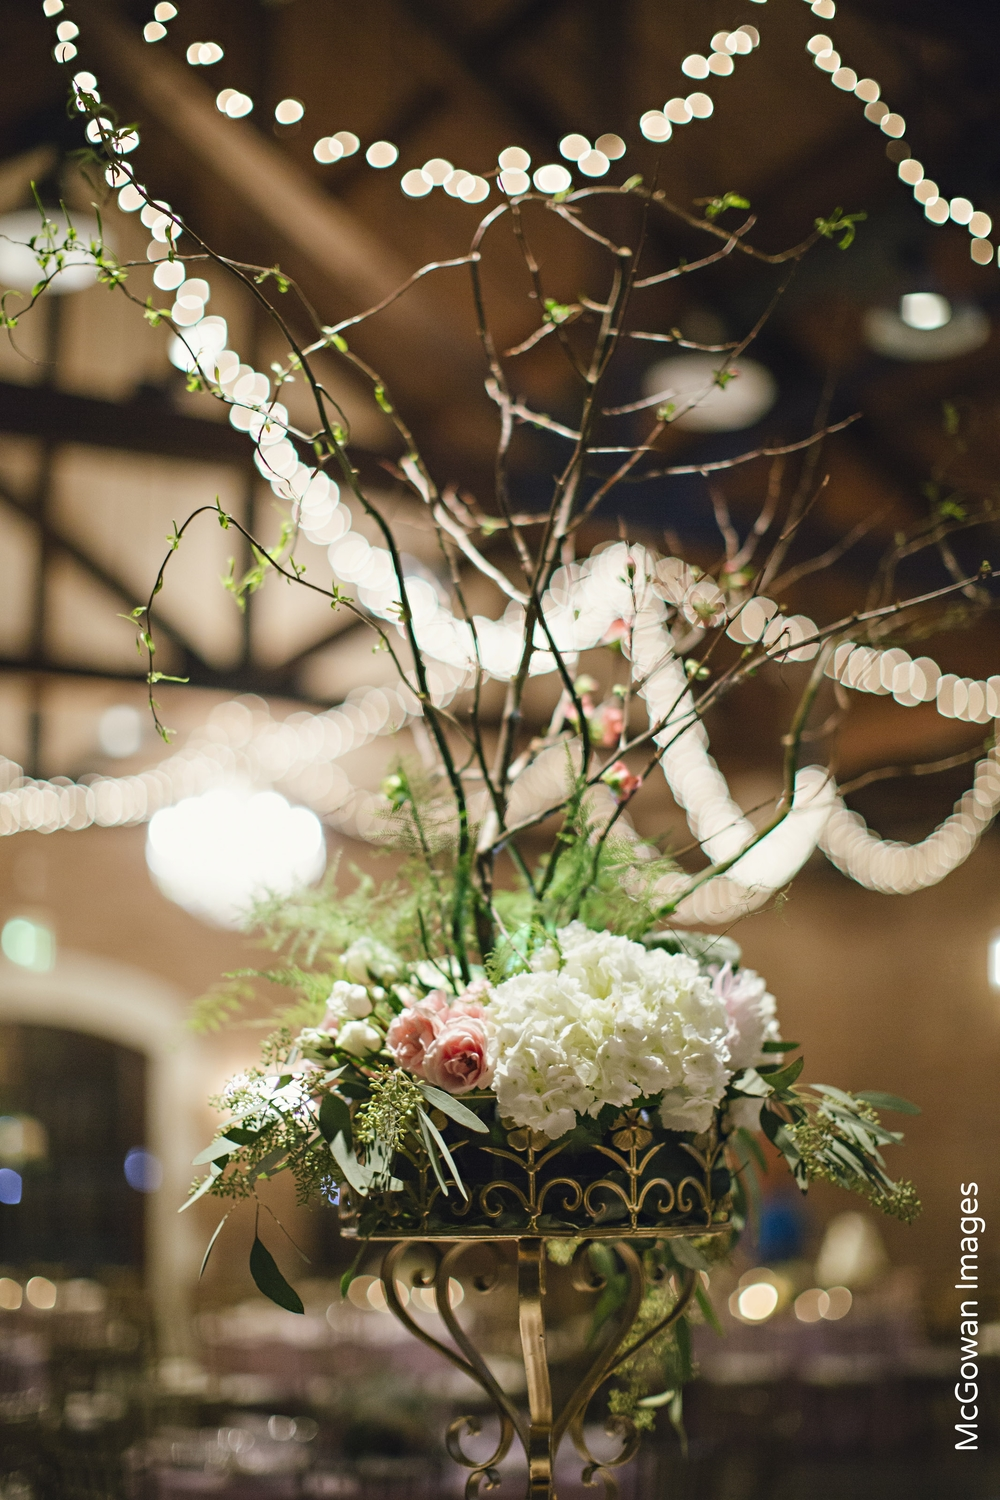 Cafe Lights Branch Wedding Centerpiece